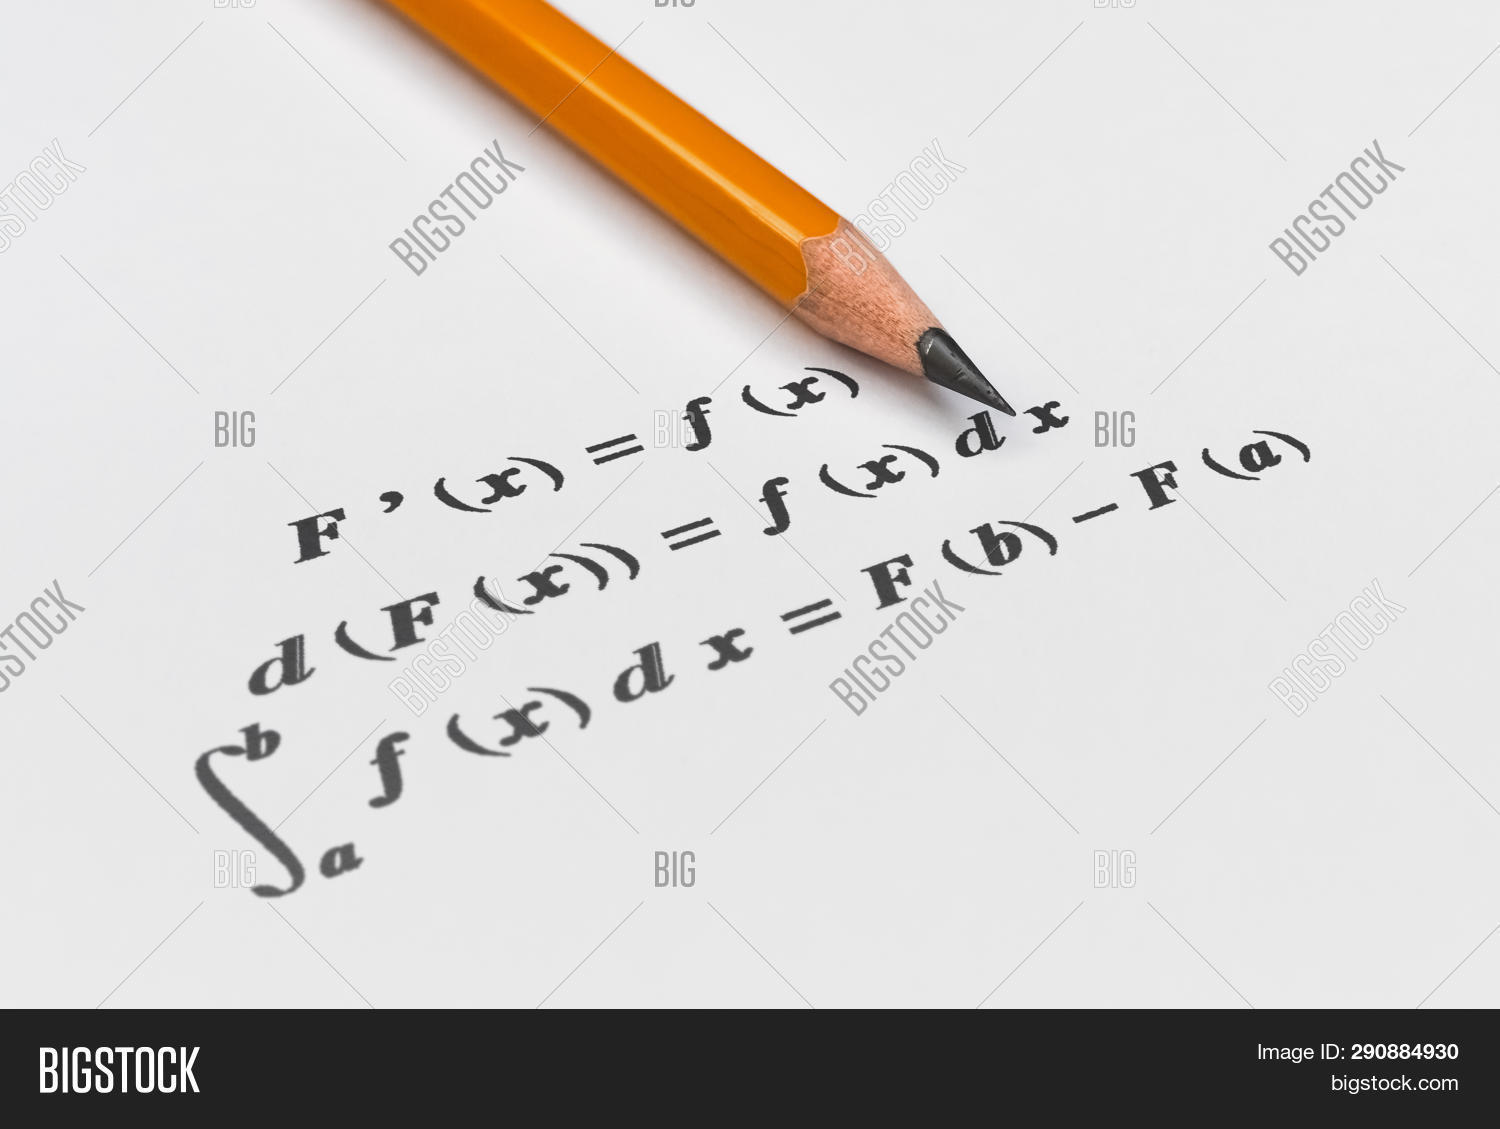 advanced,analysis,applied,basic,bounds,calculus,complicated,definite,derivative,derive,differential,difficult,education,elementary,engineer,equation,essential,formula,function,functional,fundamental,high,important,infinitesimal,integral,integration,inverse,knowledge,learn,lesson,math,mathematical,mathematics,paper,pencil,primitive,science,scientific,solve,technical,text,theorem,university,write